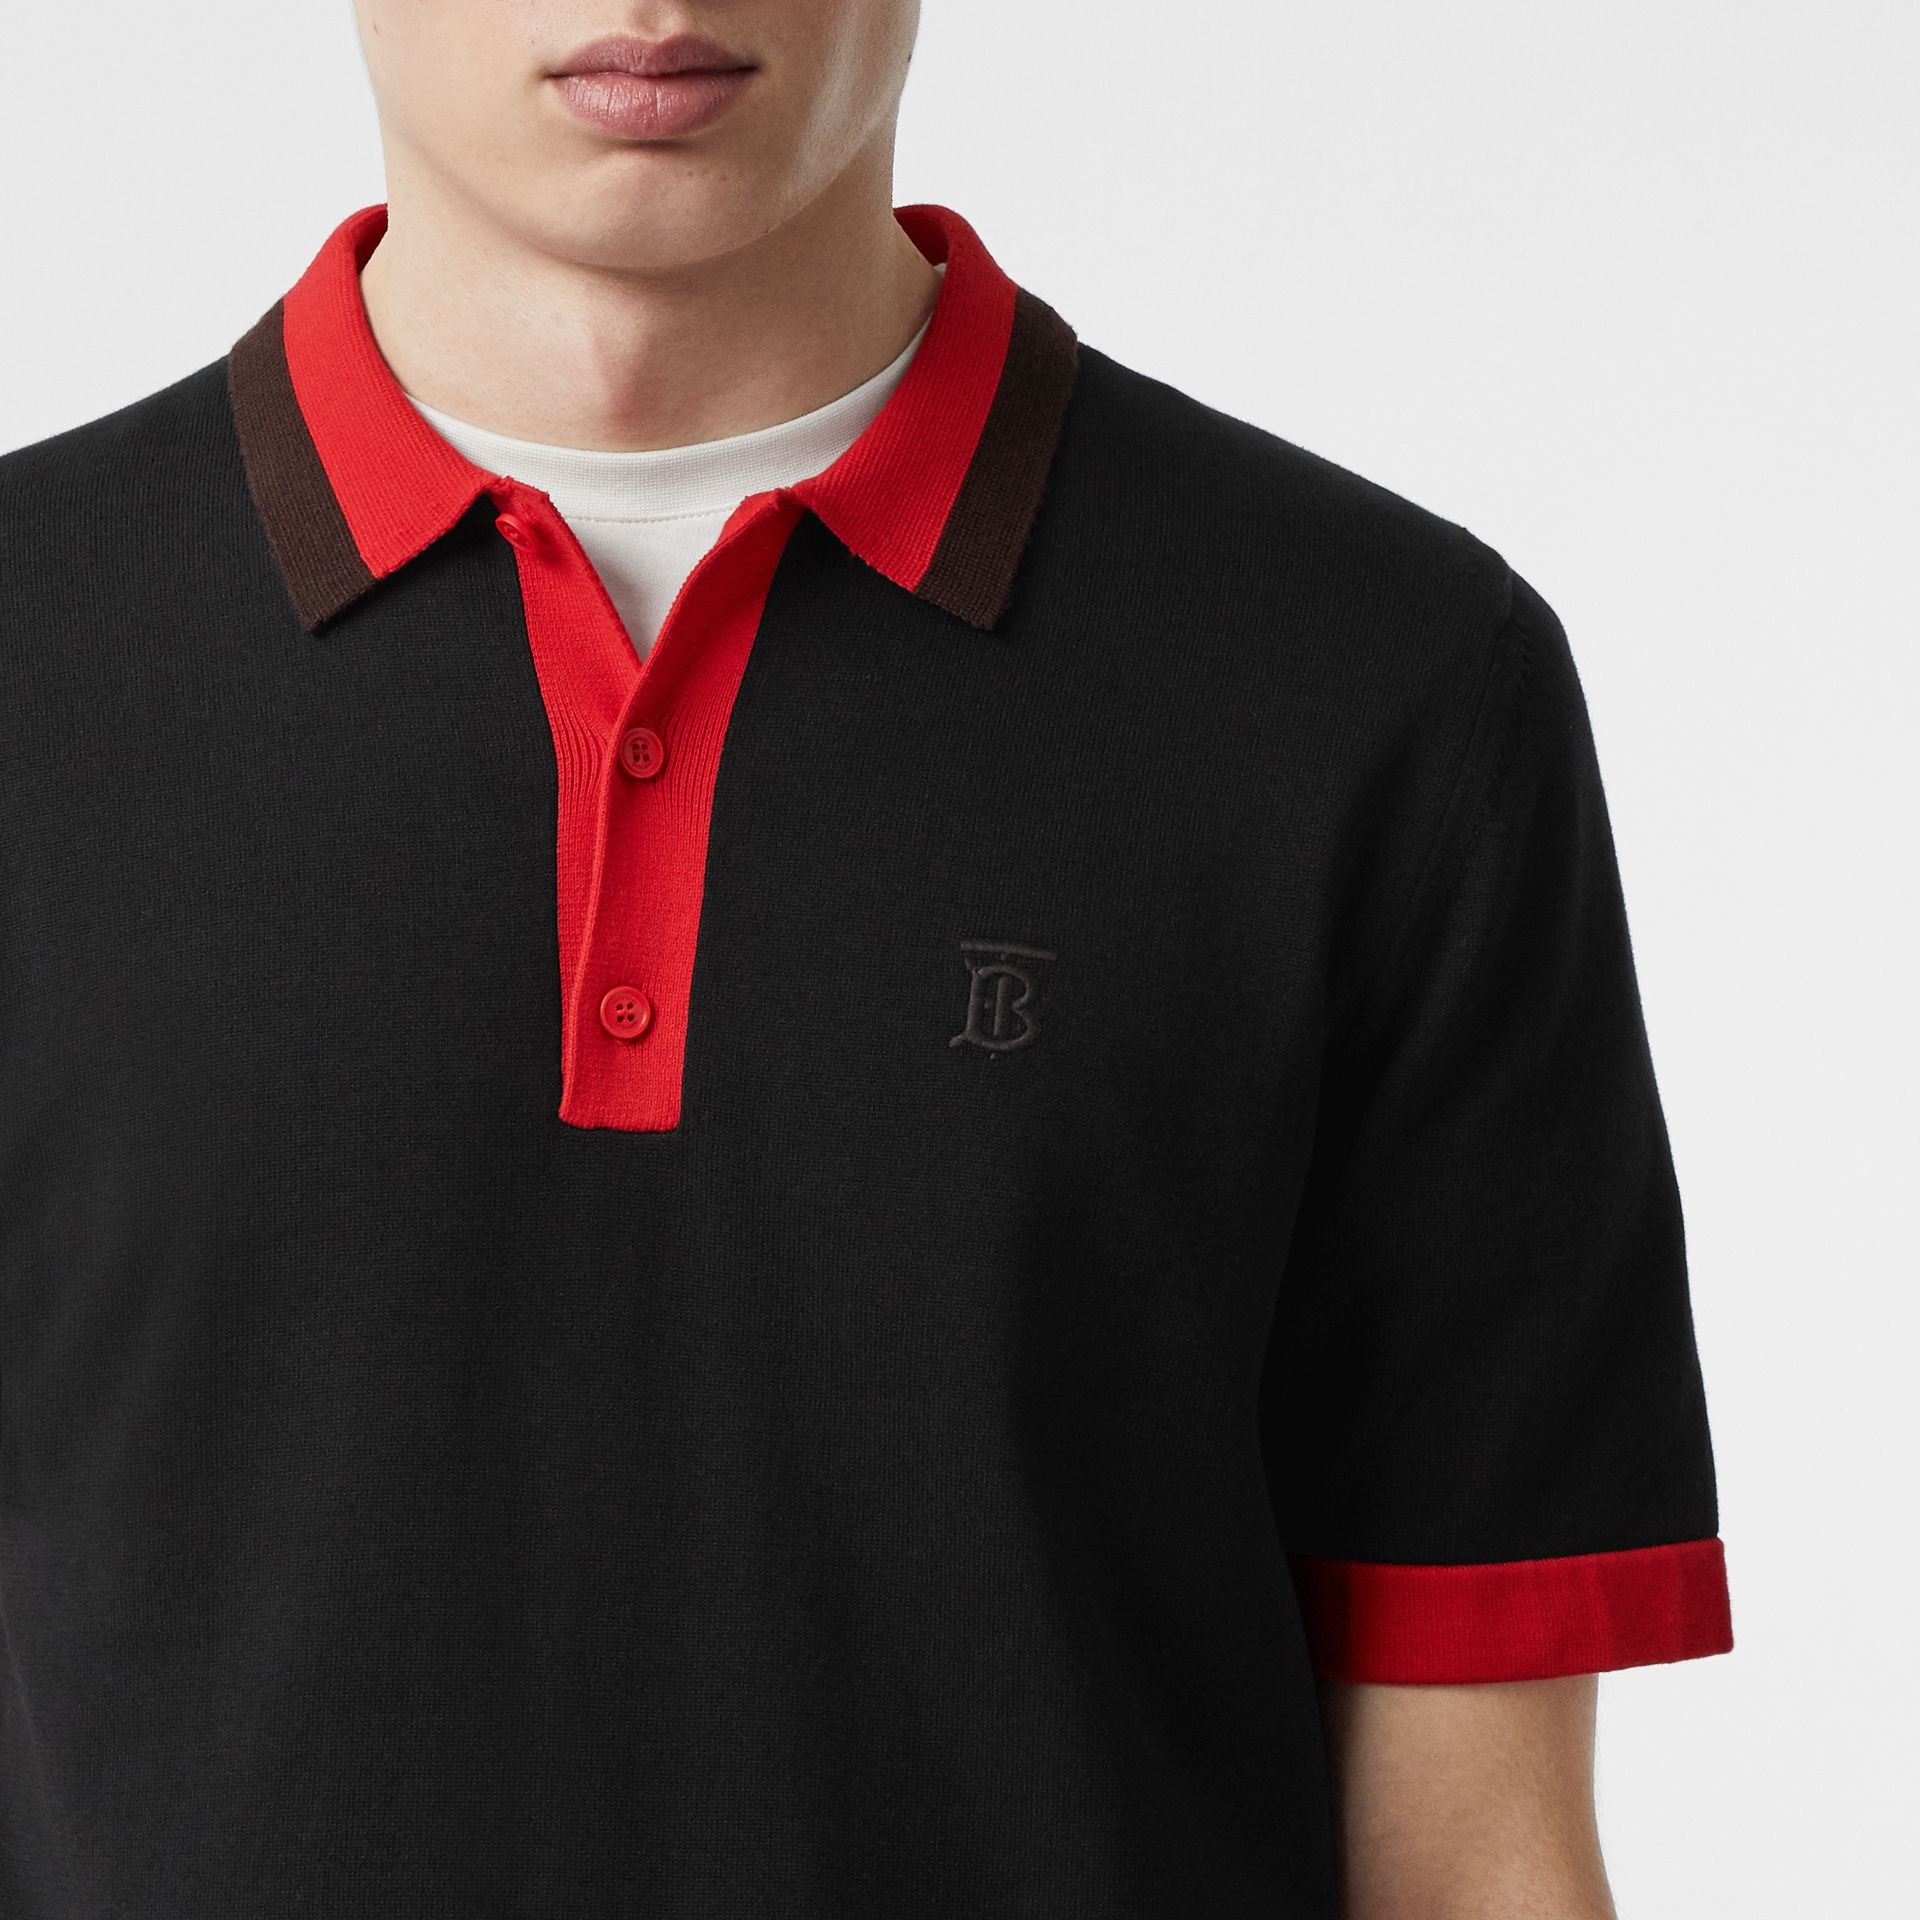 Polo à col en pointe en coton Monogram (Noir) - Homme | Burberry - photo de la galerie 1